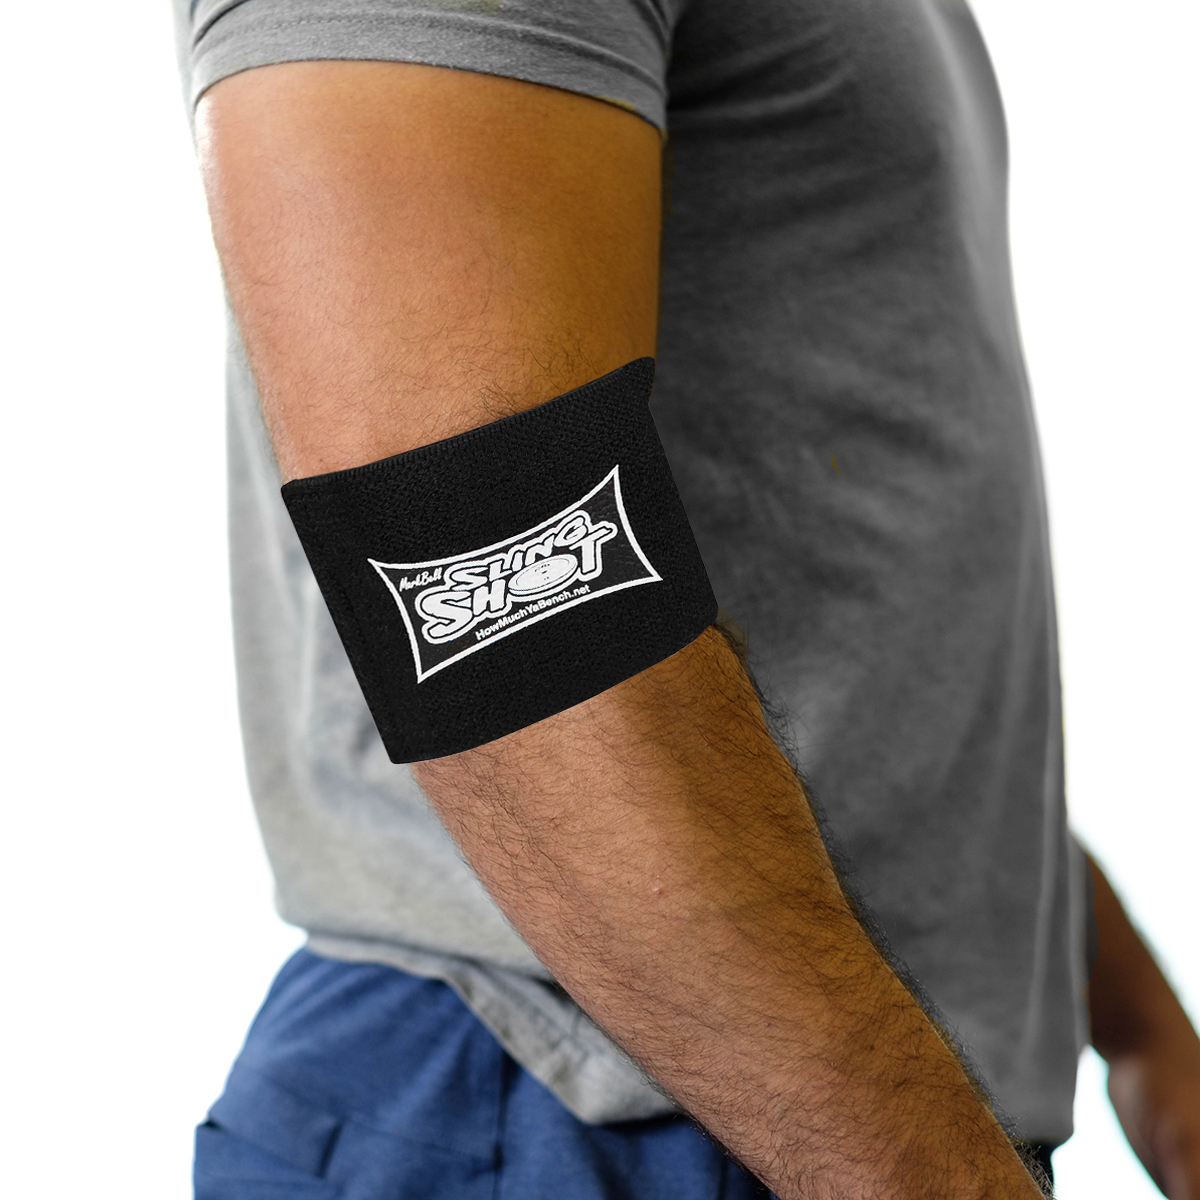 Sling-Shot-Compression-Cuff-Upper-Body-by-Mark-Bell-Elastic-joint-support-band thumbnail 3